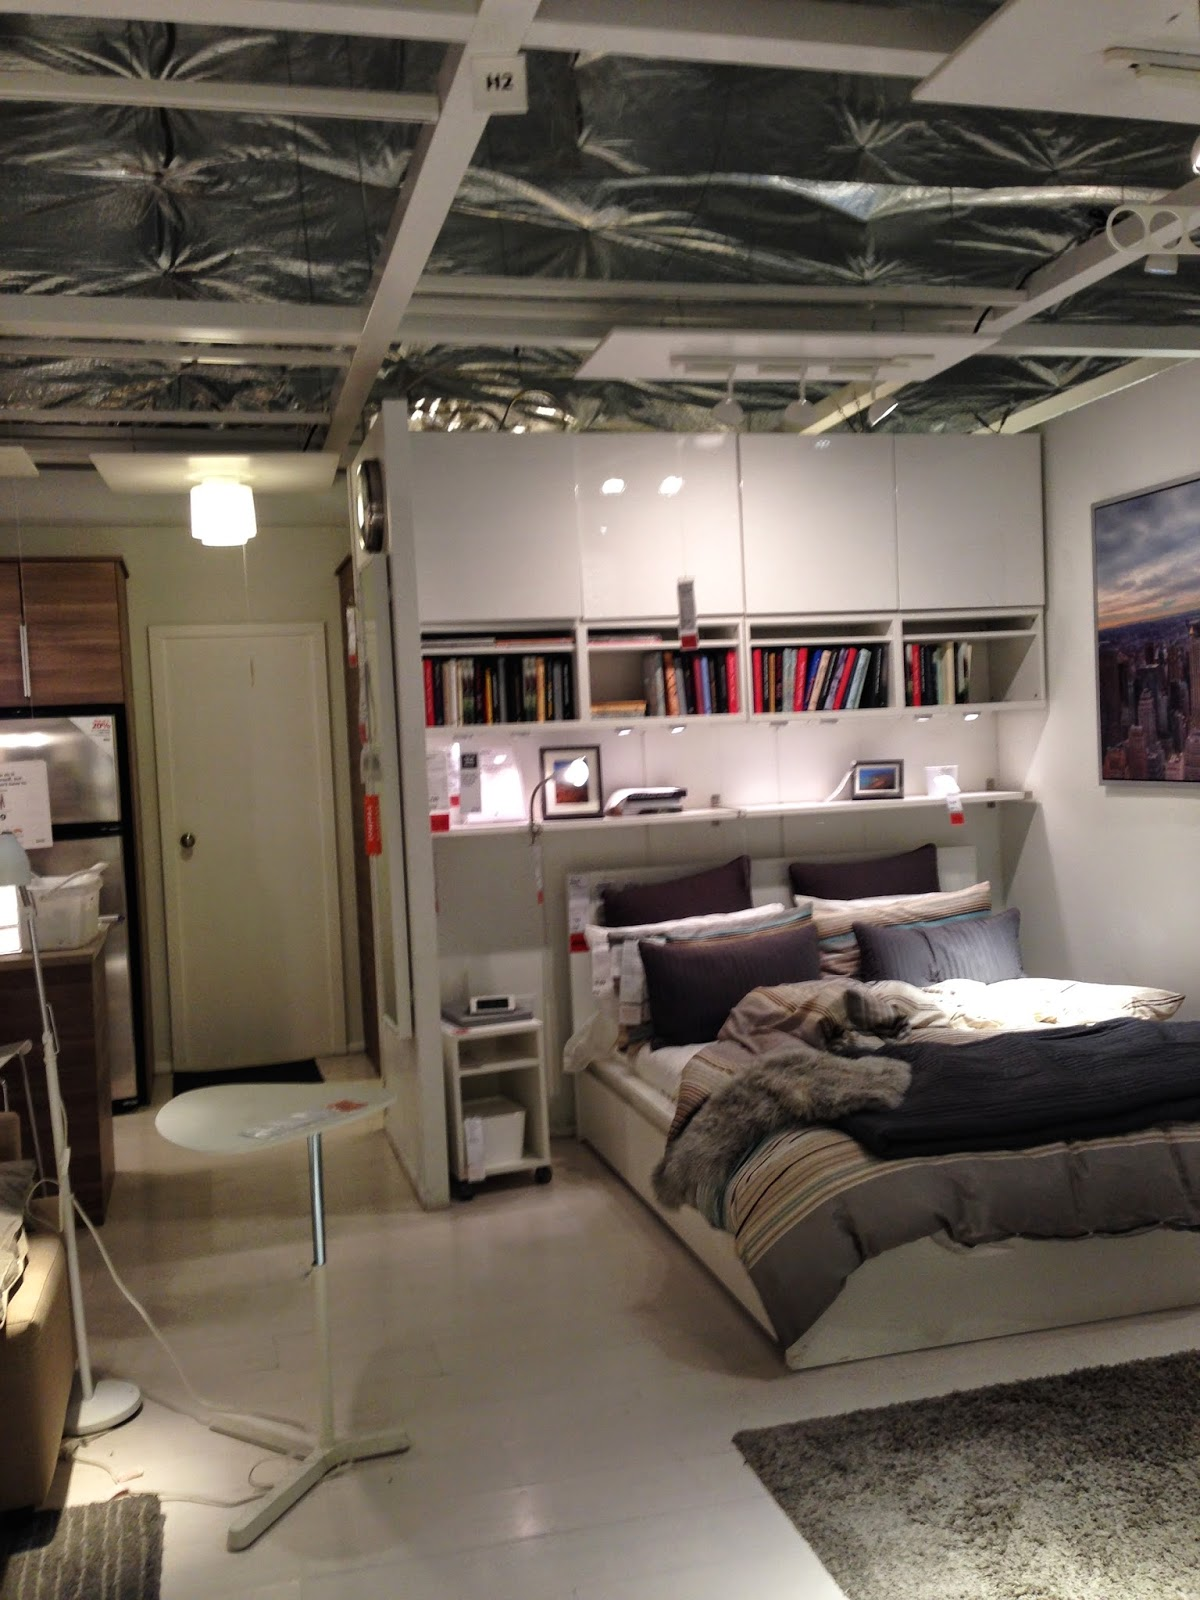 the showrooms in ikea are FULL of room vignettes where cabinets are mounted  above beds  sitting areas  desk areas and even eating areas  every inch is  used. design dump  3 things you can learn from an ikea showroom